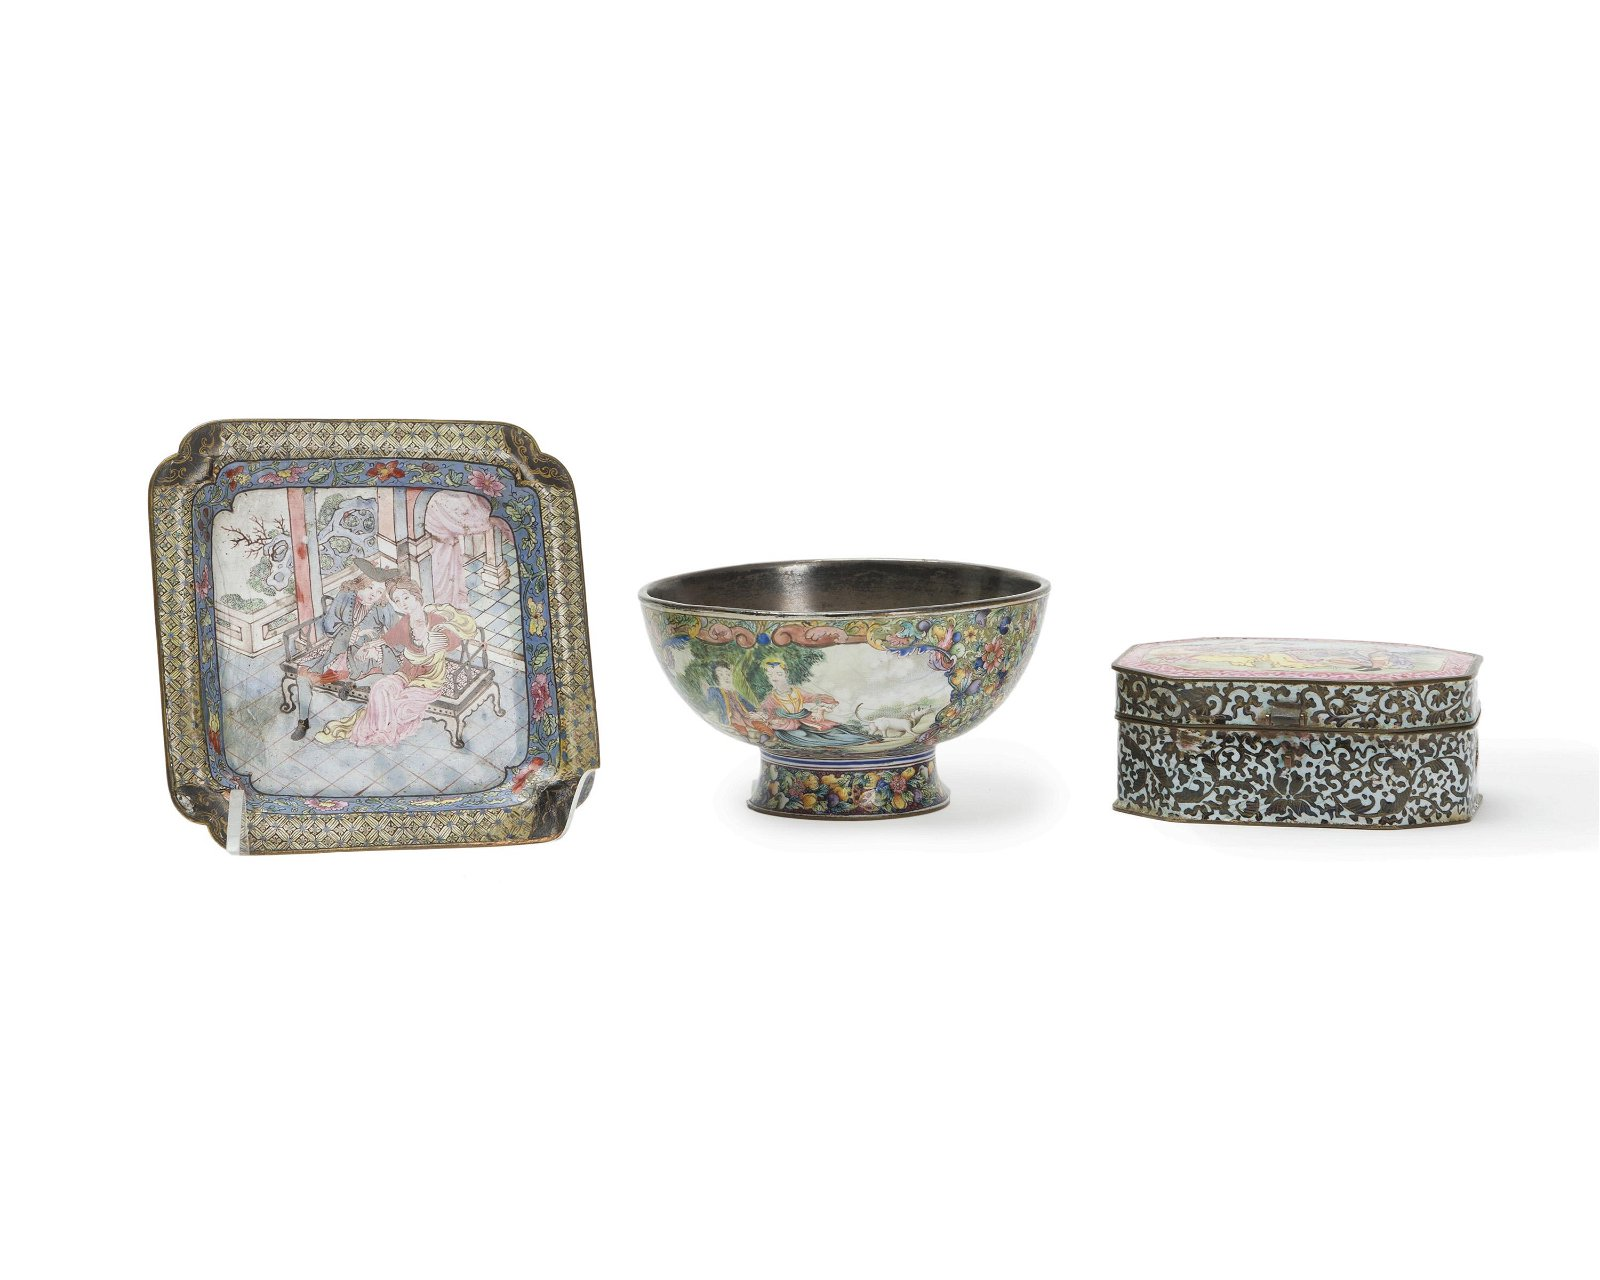 Three Chinese enameled table items for the Western